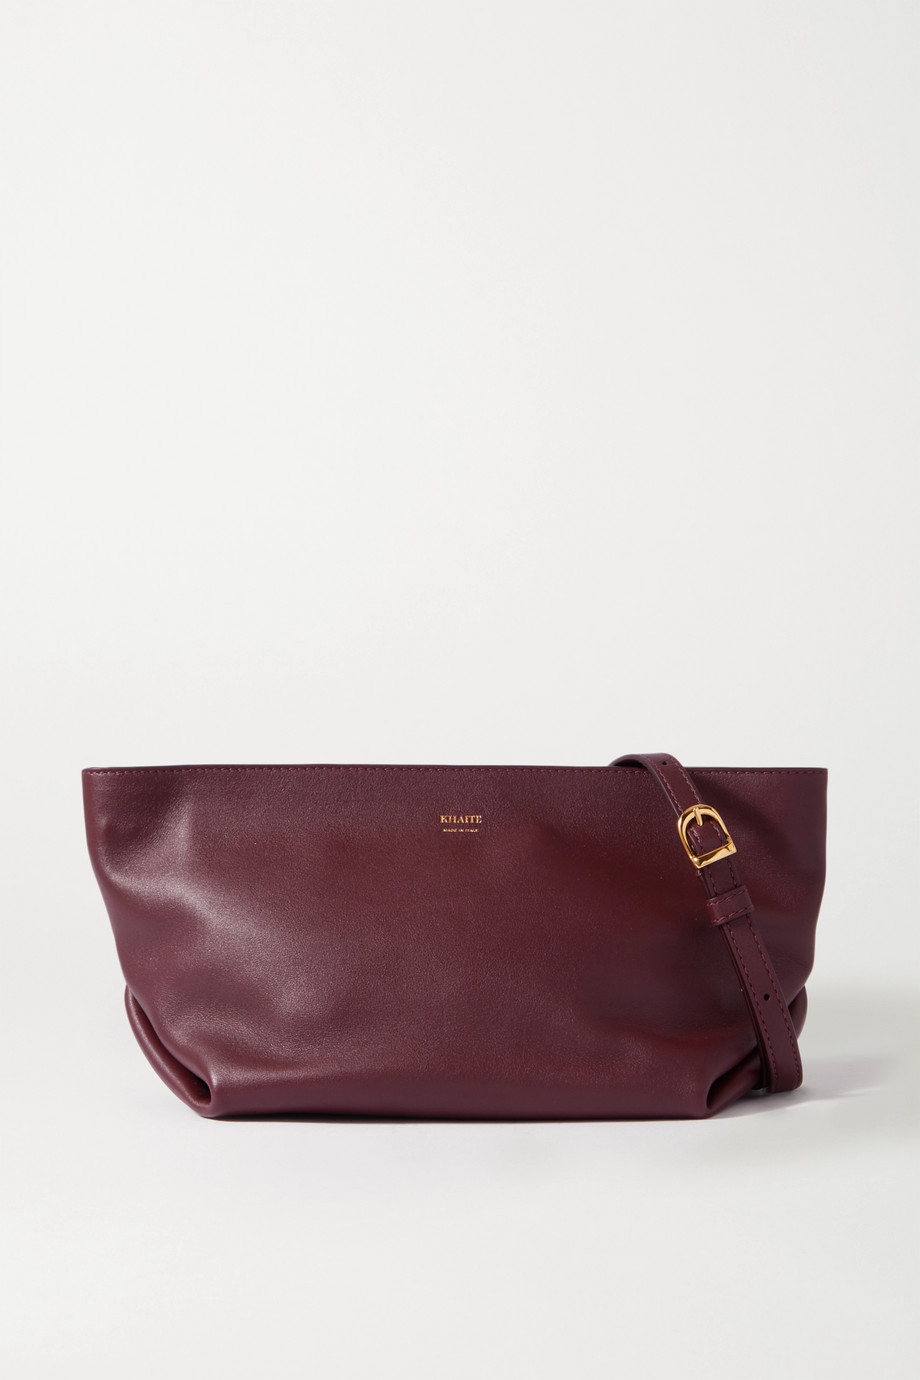 Khaite Adeline leather shoulder bag